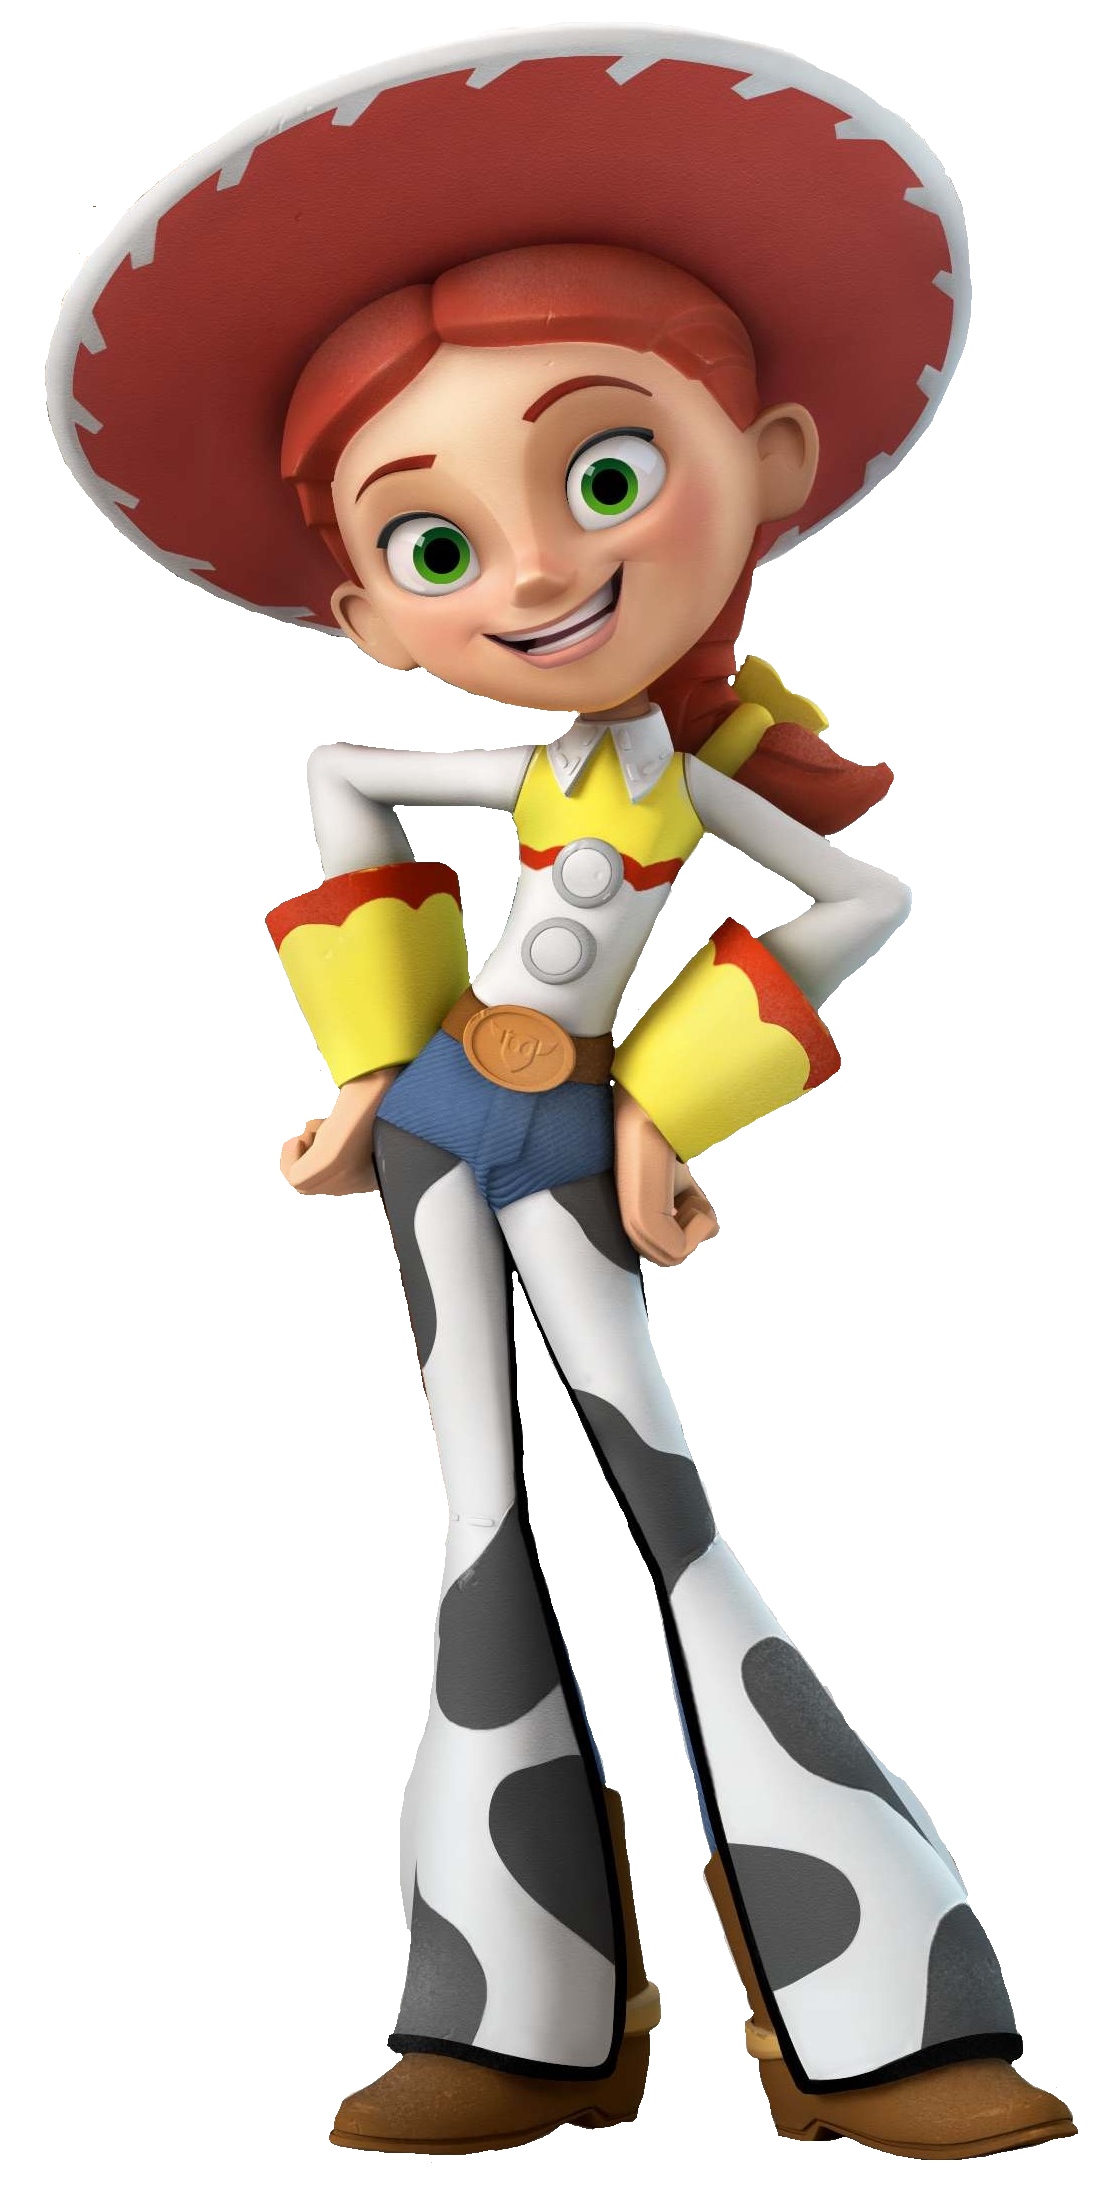 Costume clipart story character. Jessie from toy google